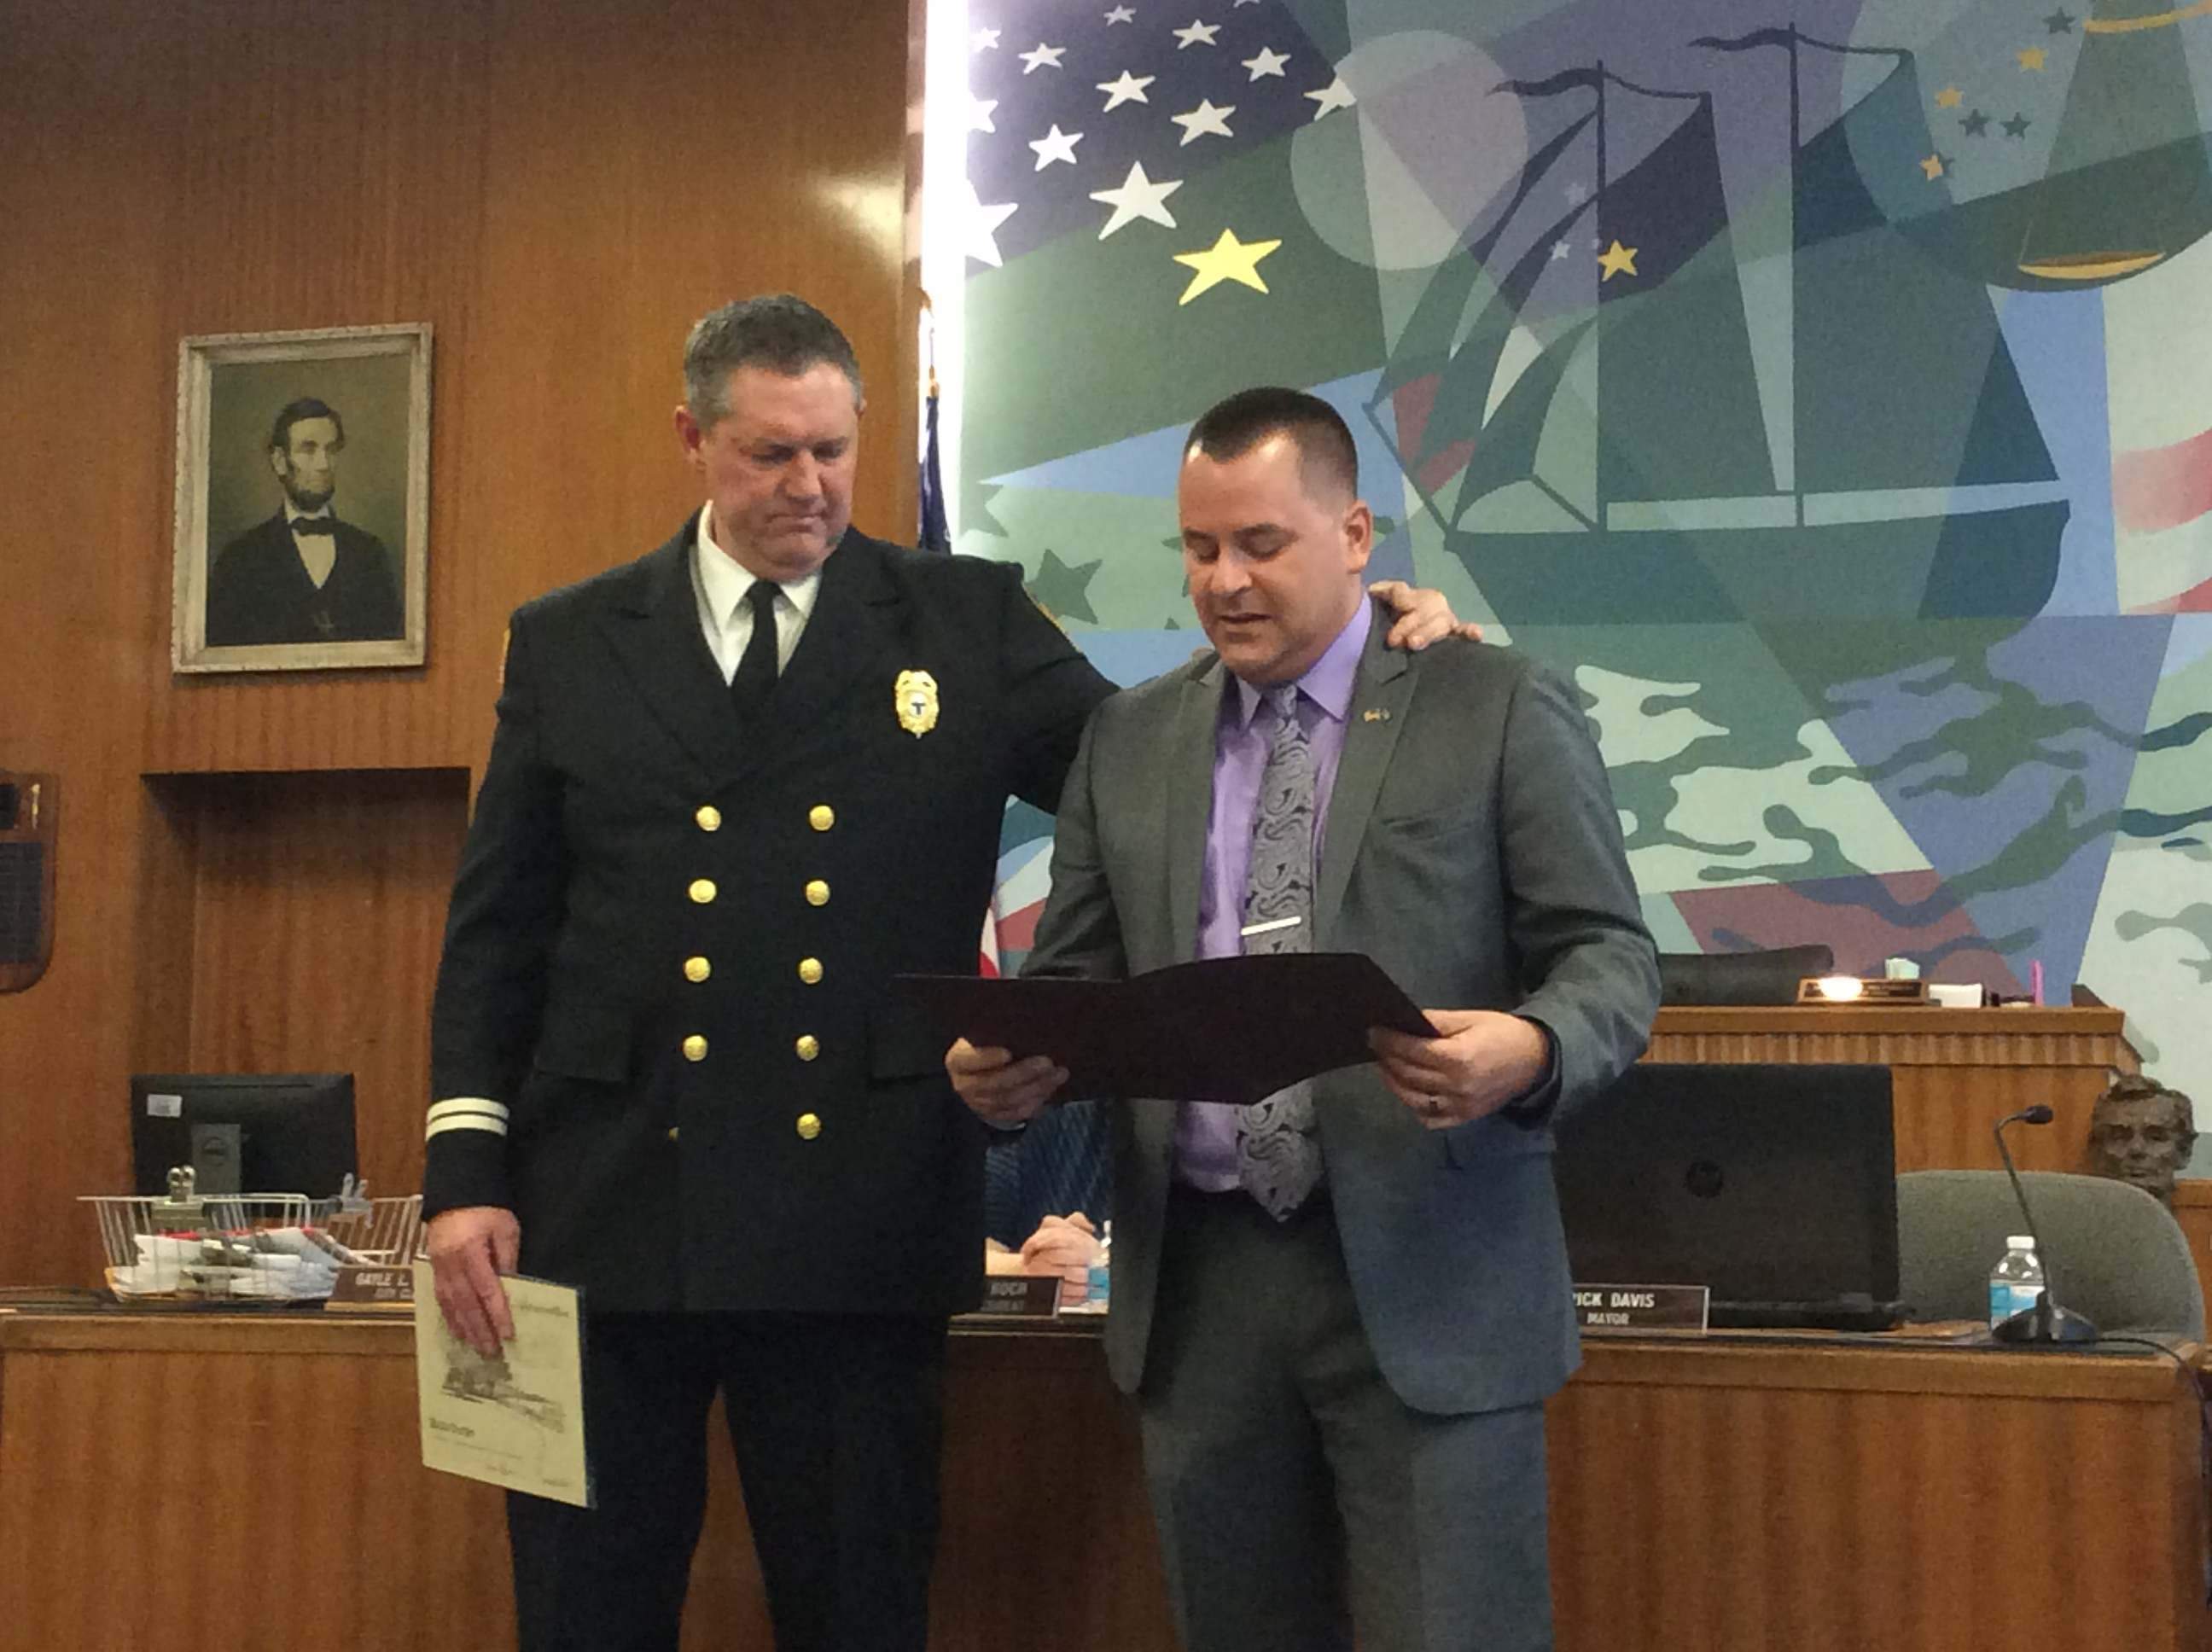 Volunteer firefighter Rick Oates is honored for his service by City of Tonawanda Mayor Rick Davis.